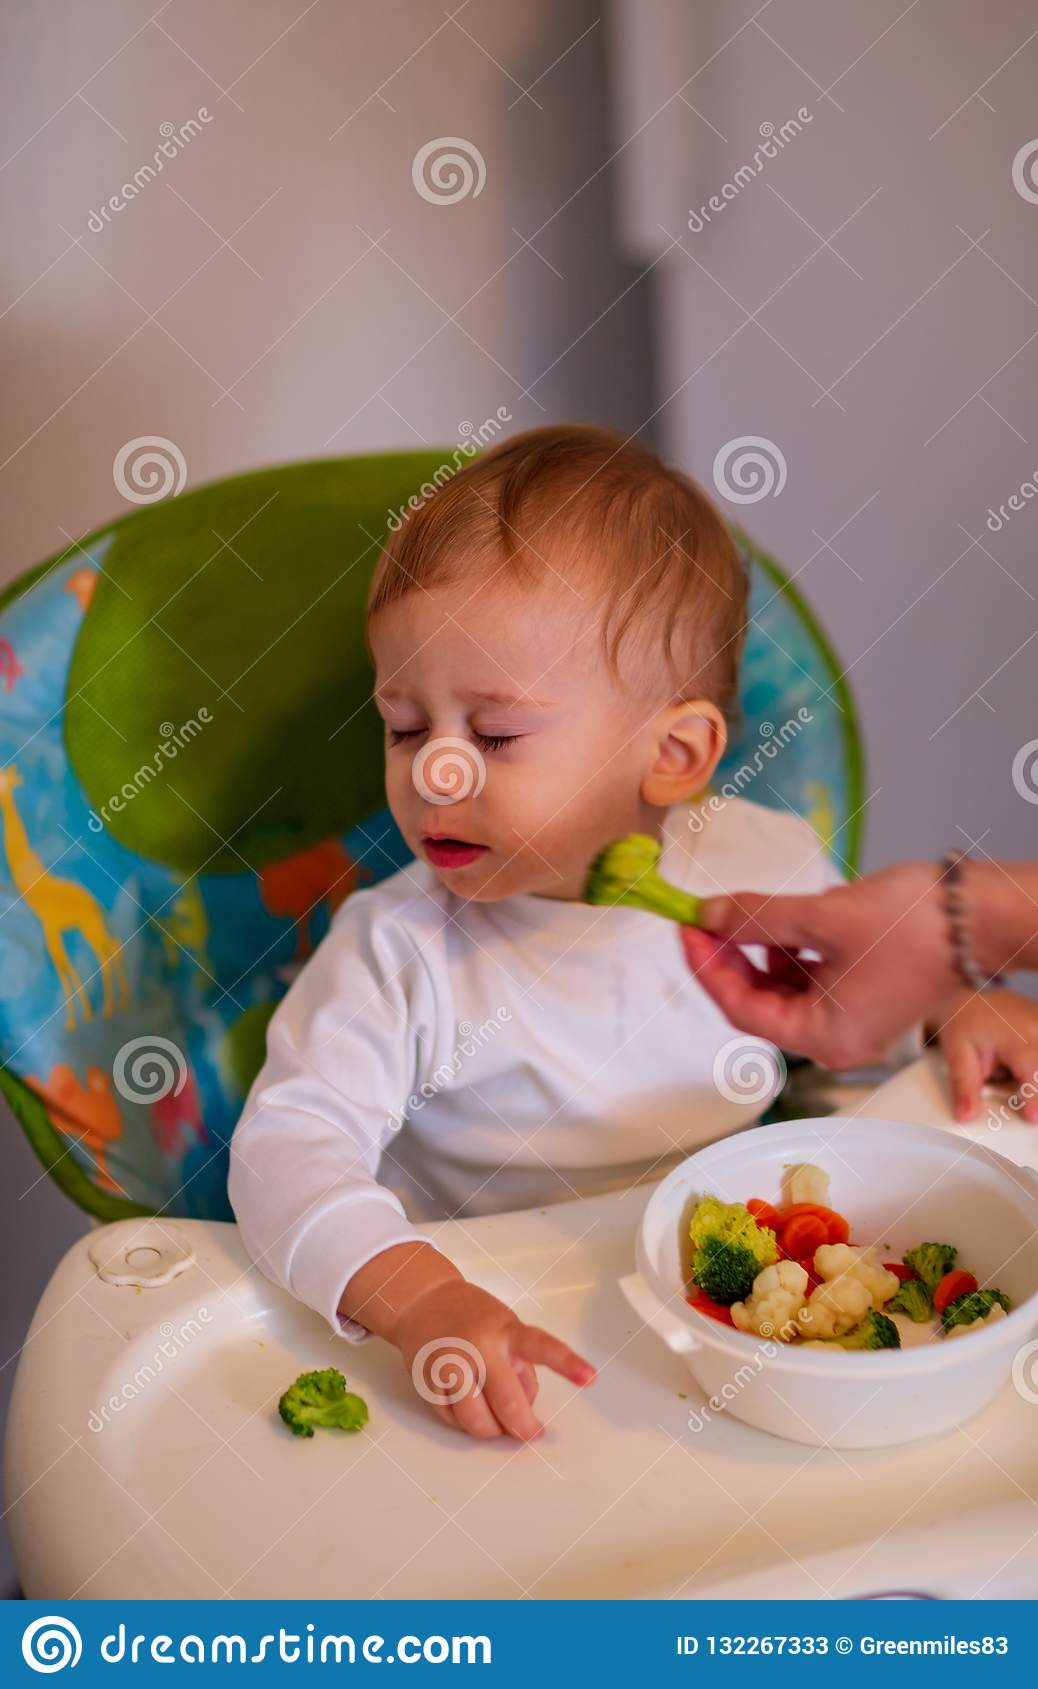 Feeding baby with vegetables -Beautiful baby refuses to eat broc